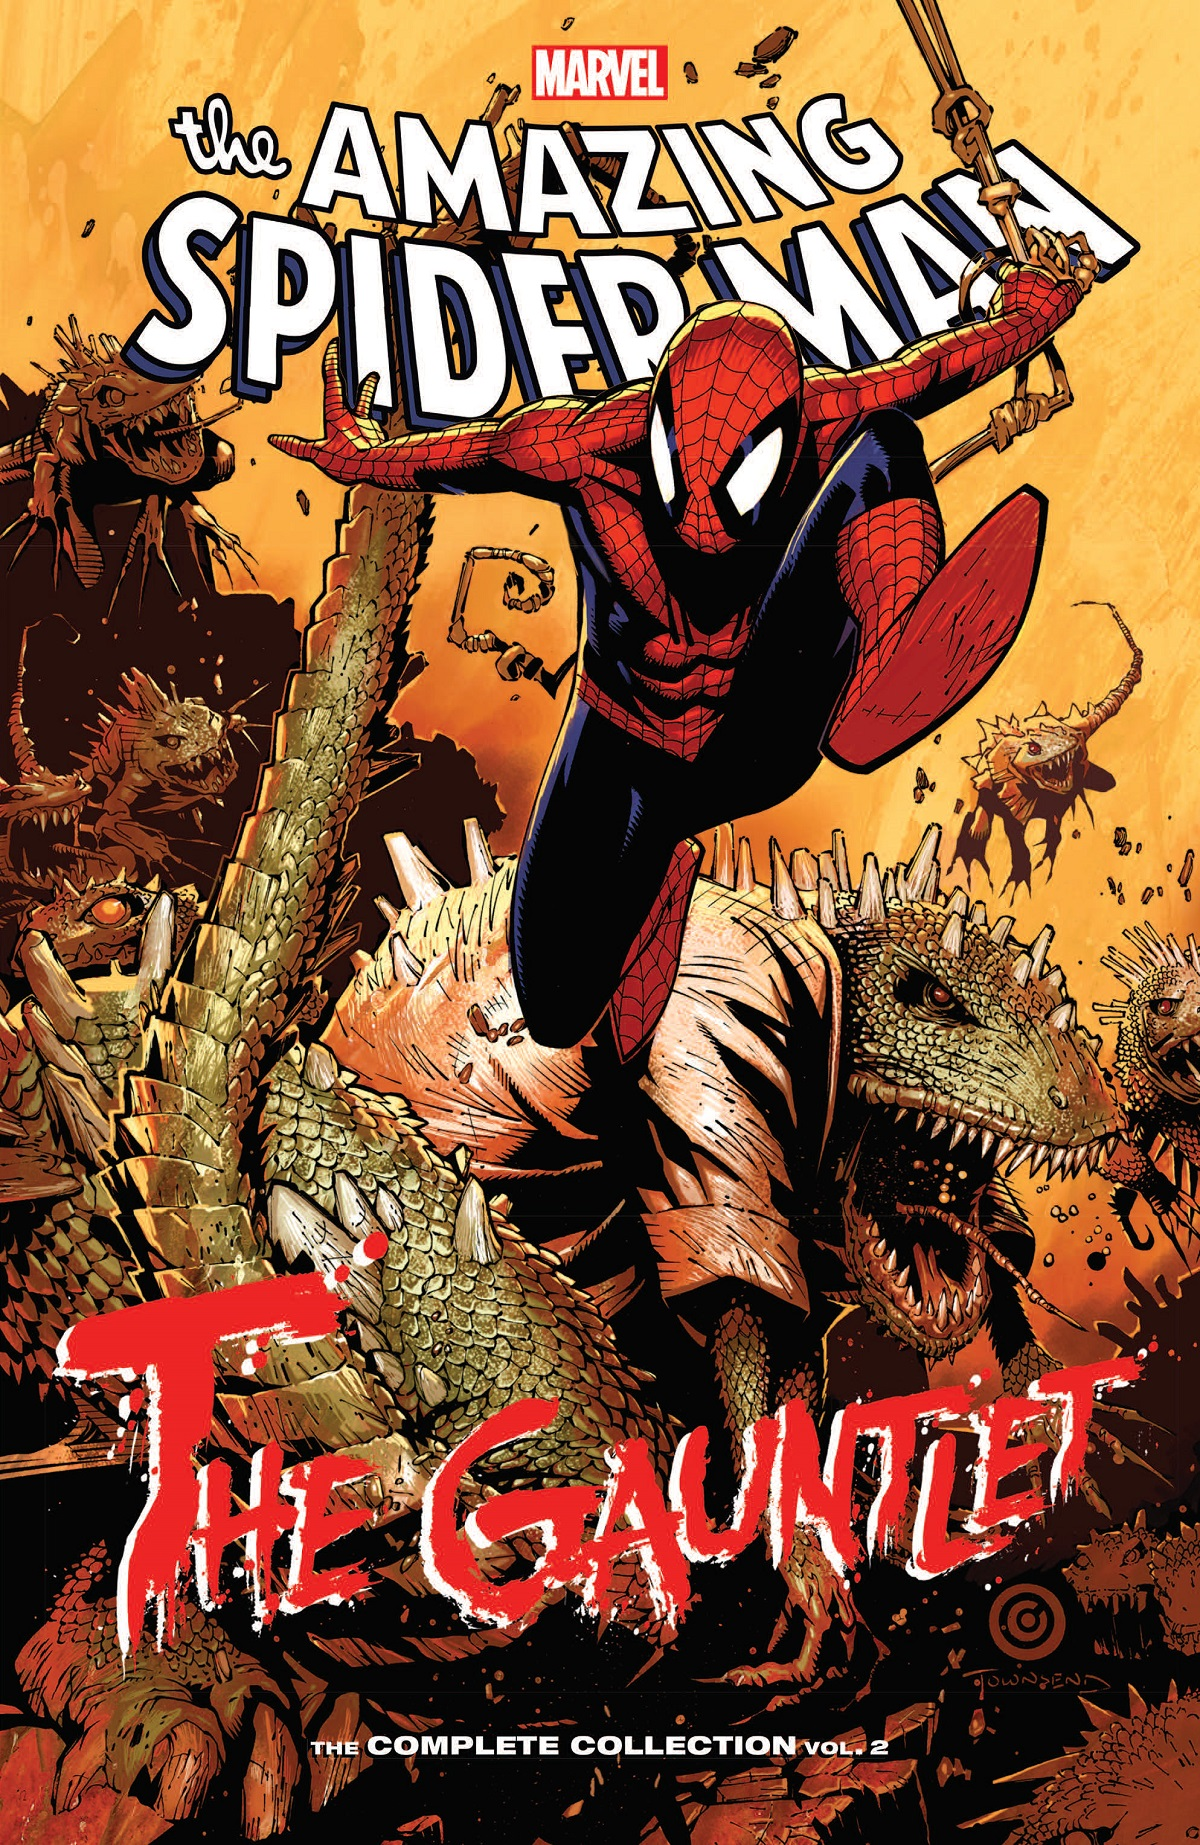 SPIDER-MAN: THE GAUNTLET - THE COMPLETE COLLECTION VOL. 2 TPB (Trade Paperback)